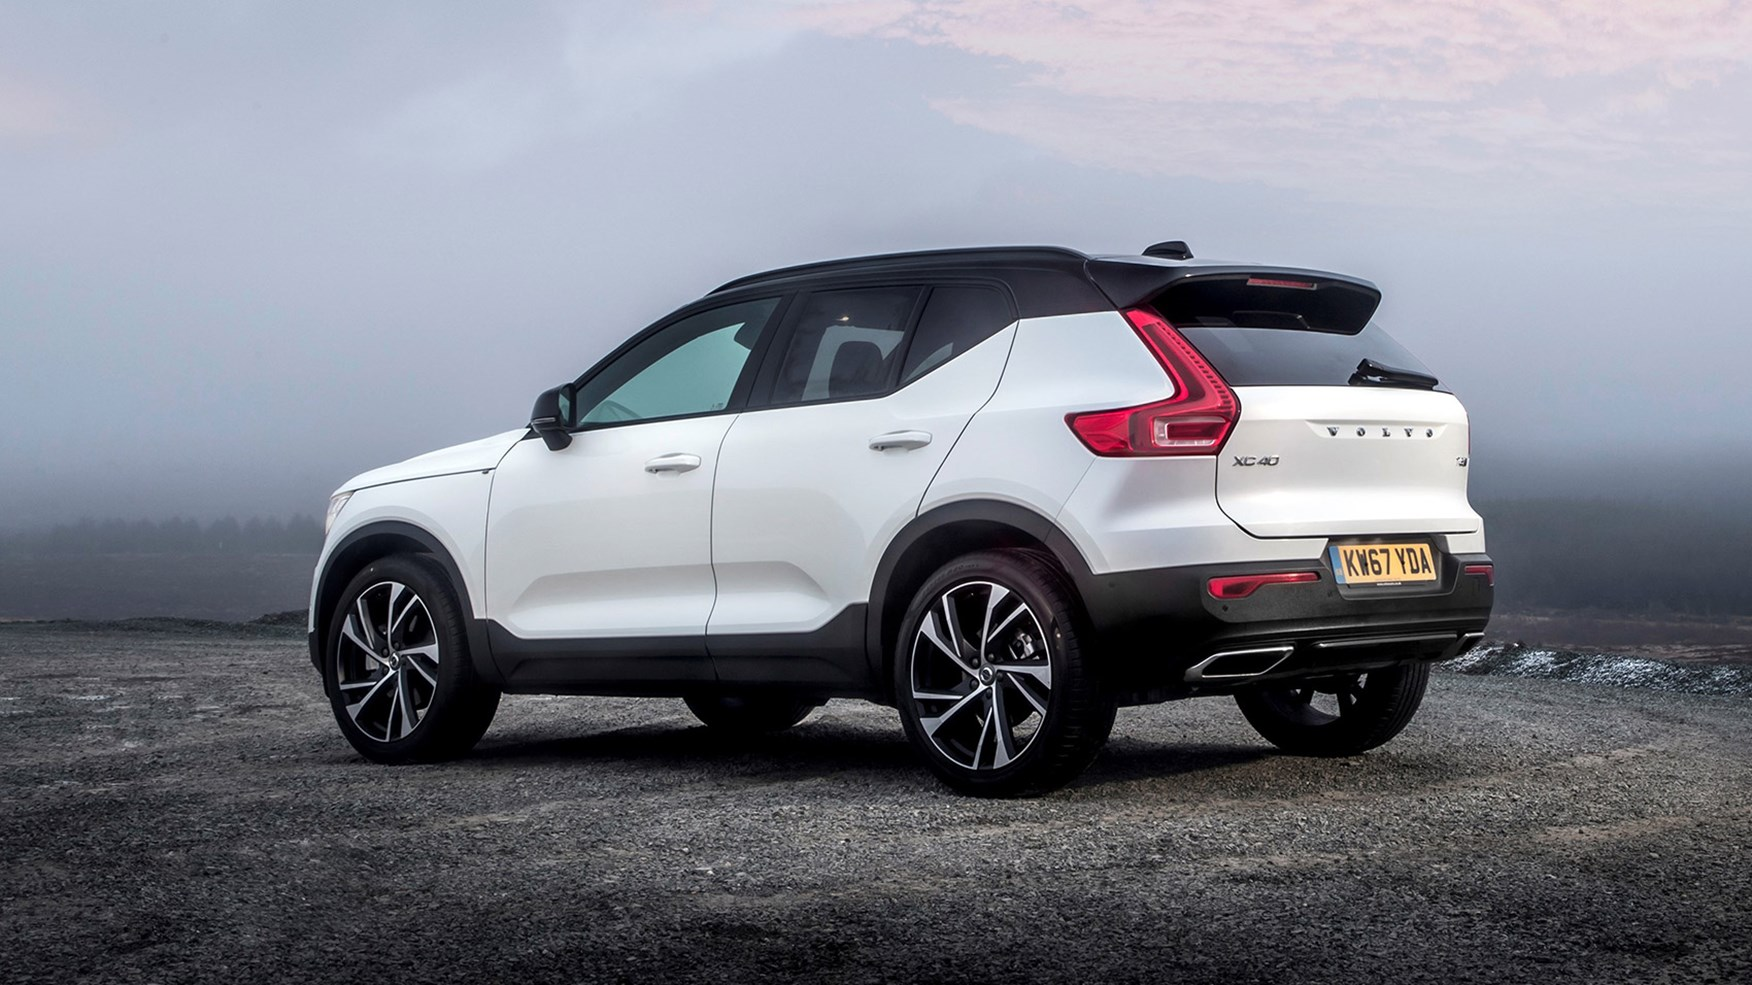 Volvo Xc40 Suv Review Specs Prices Pictures By Car Magazine